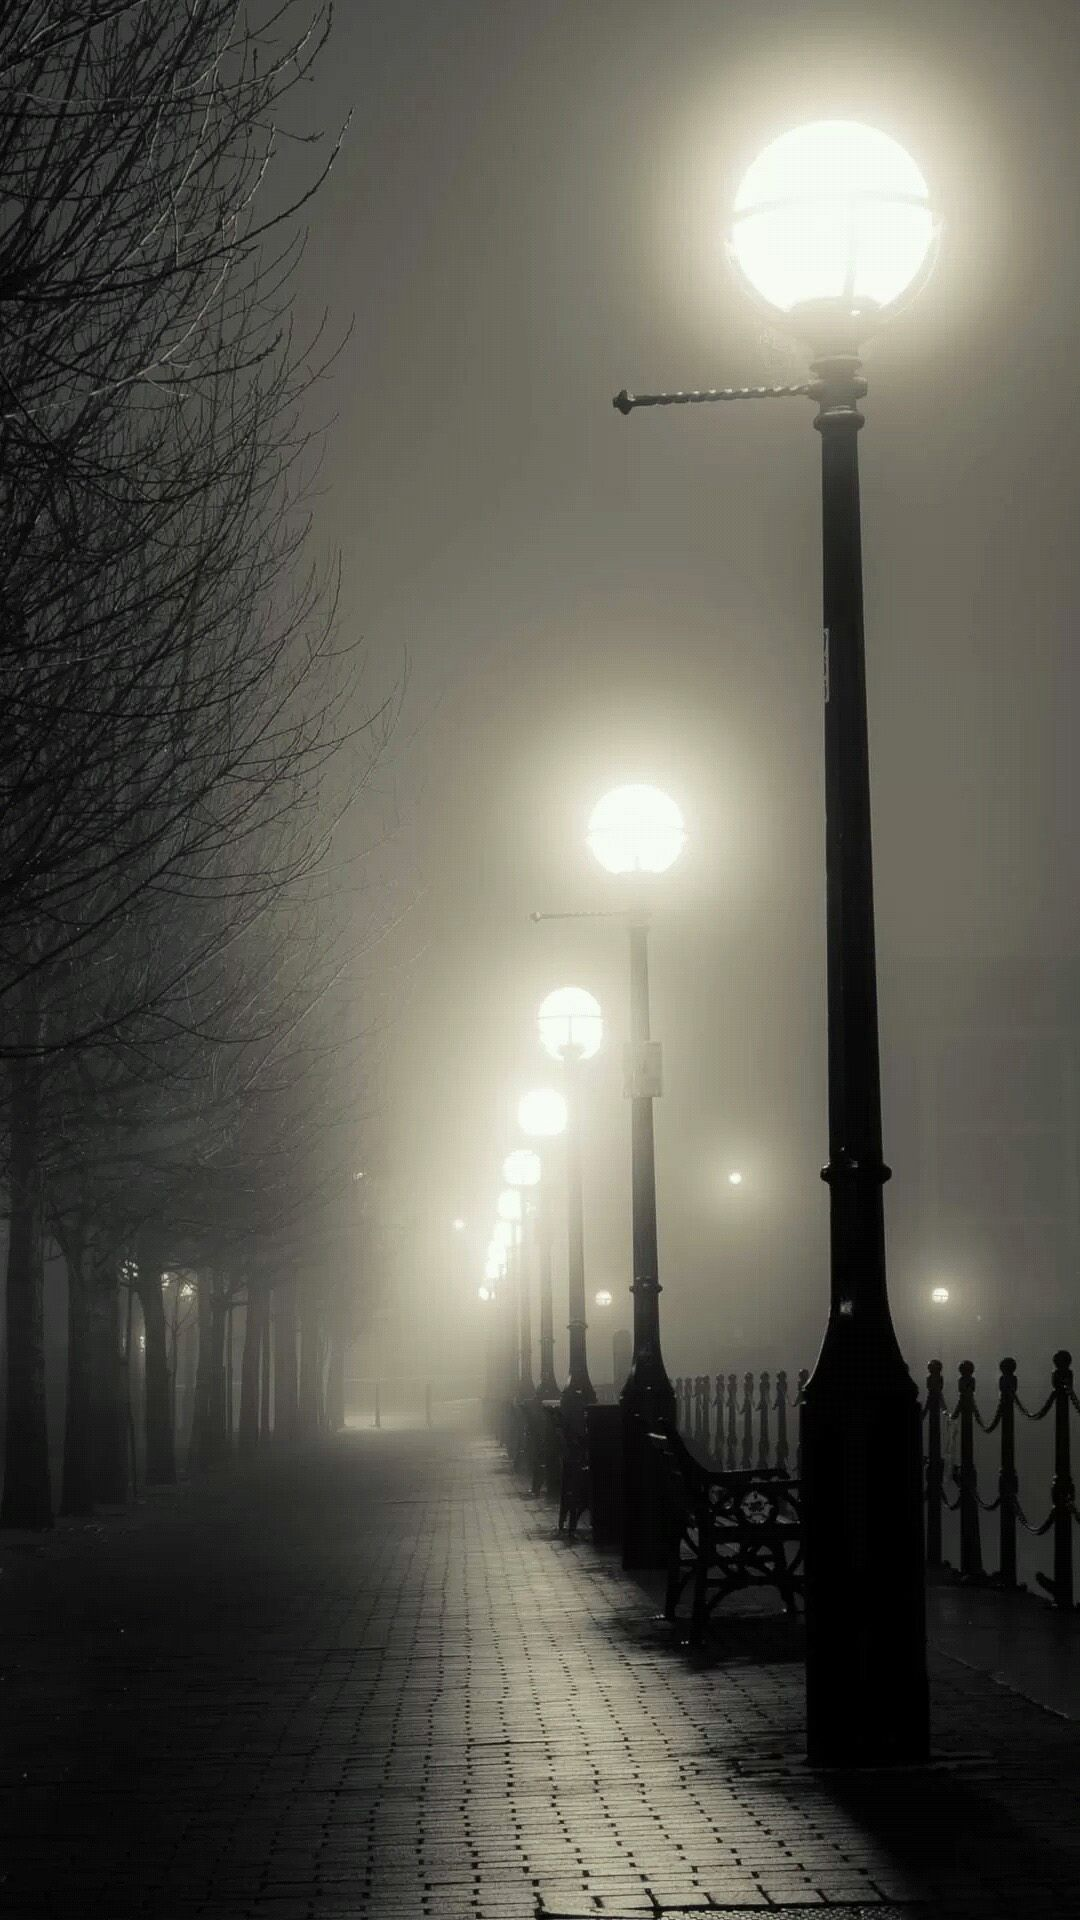 Hd wallpaper note 3 - Foggy Street Lights Android Wallpaper